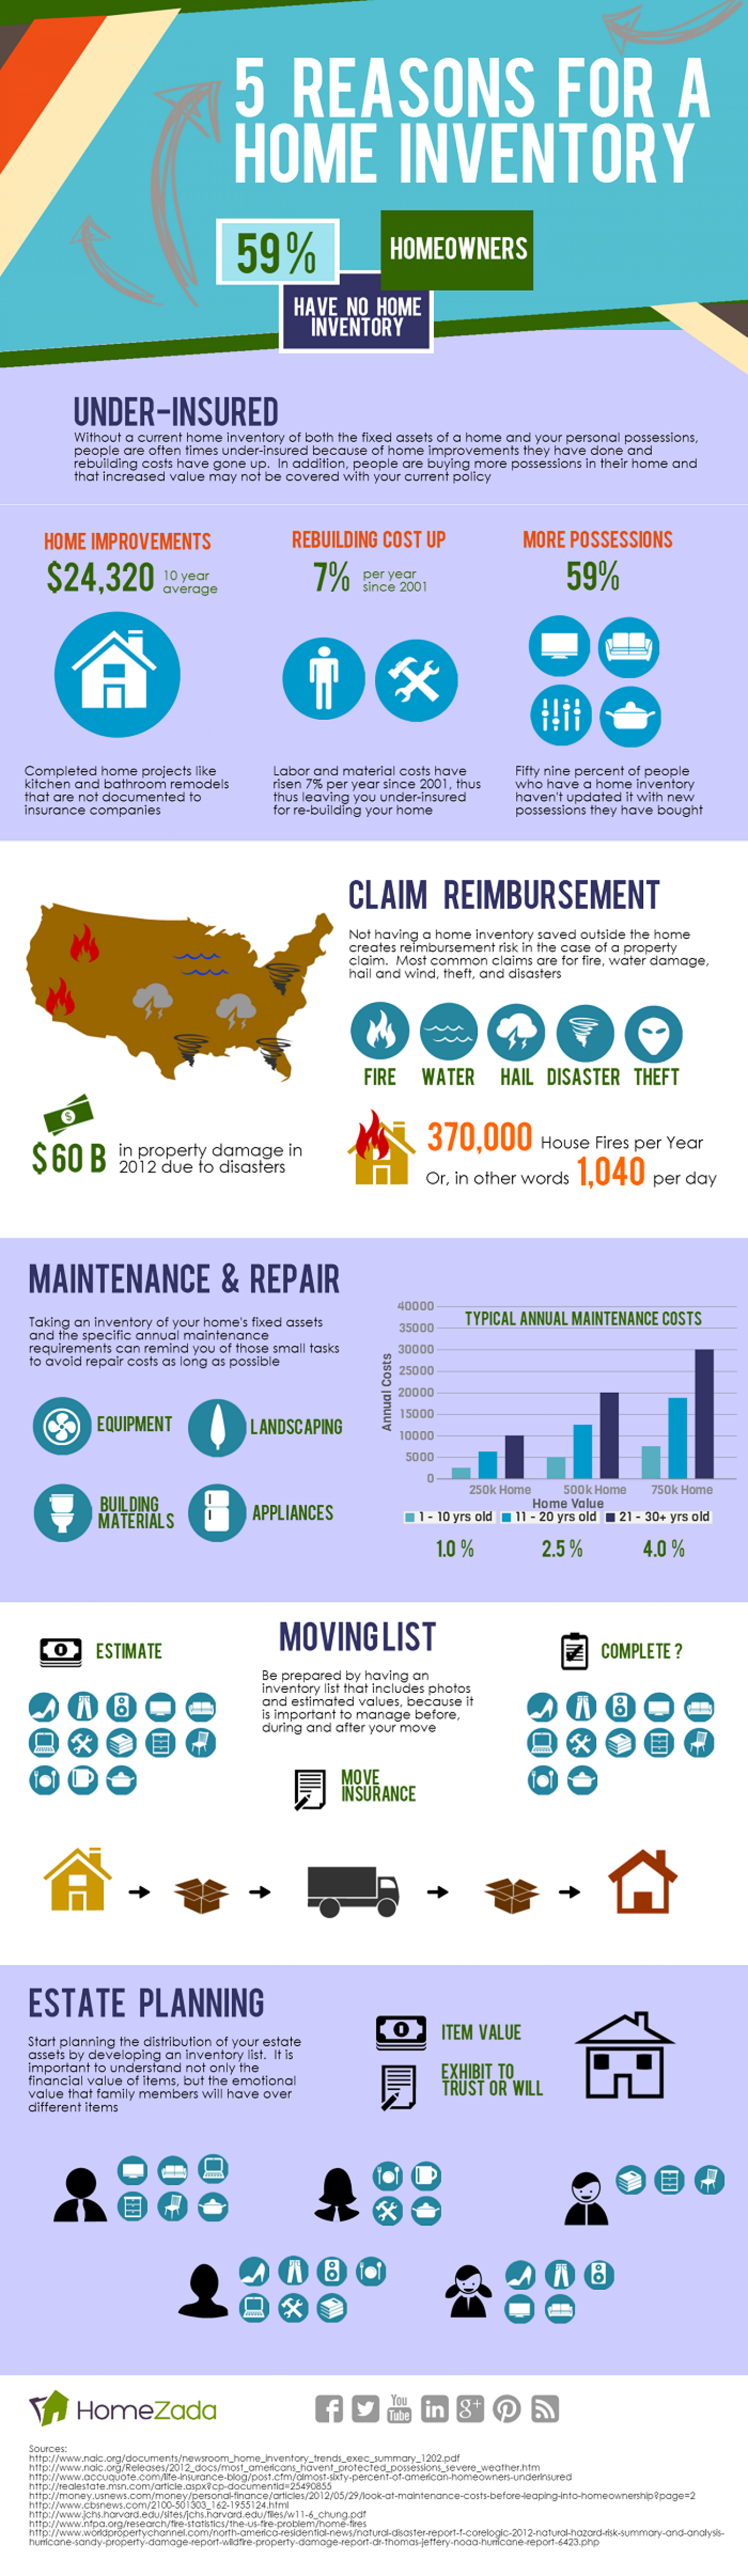 Five Reasons for a Home Inventory Infographic